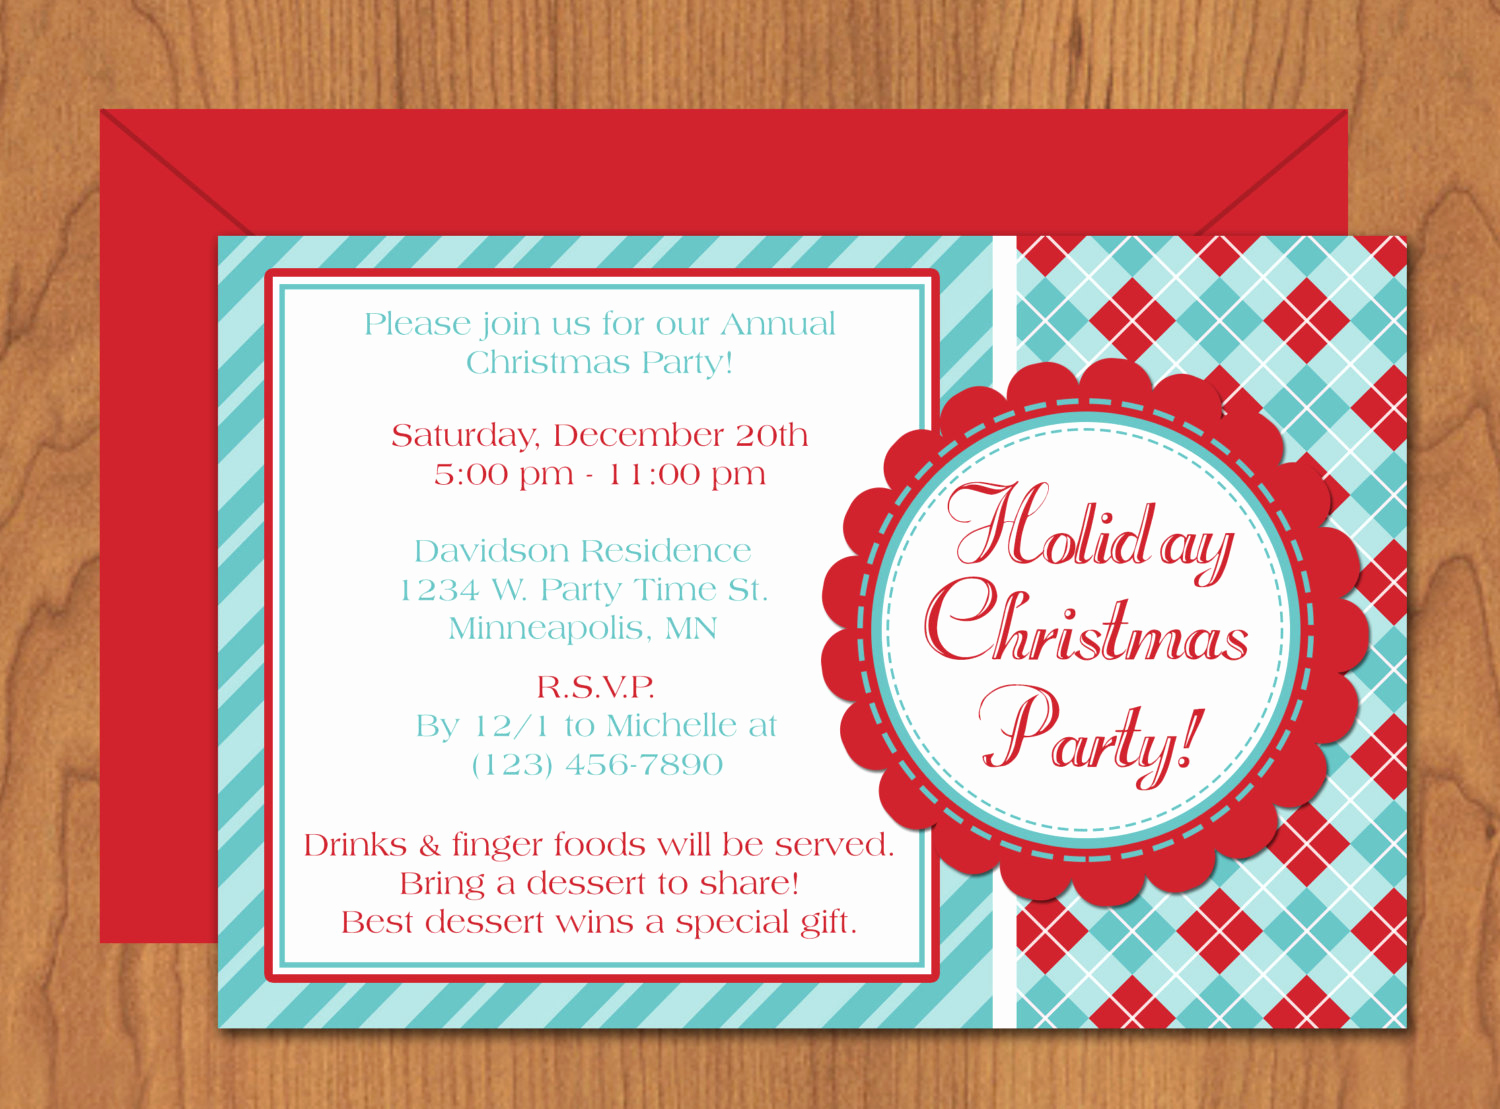 Holiday Party Invitation Template Best Of Christmas Party Invitation Editable Template Microsoft